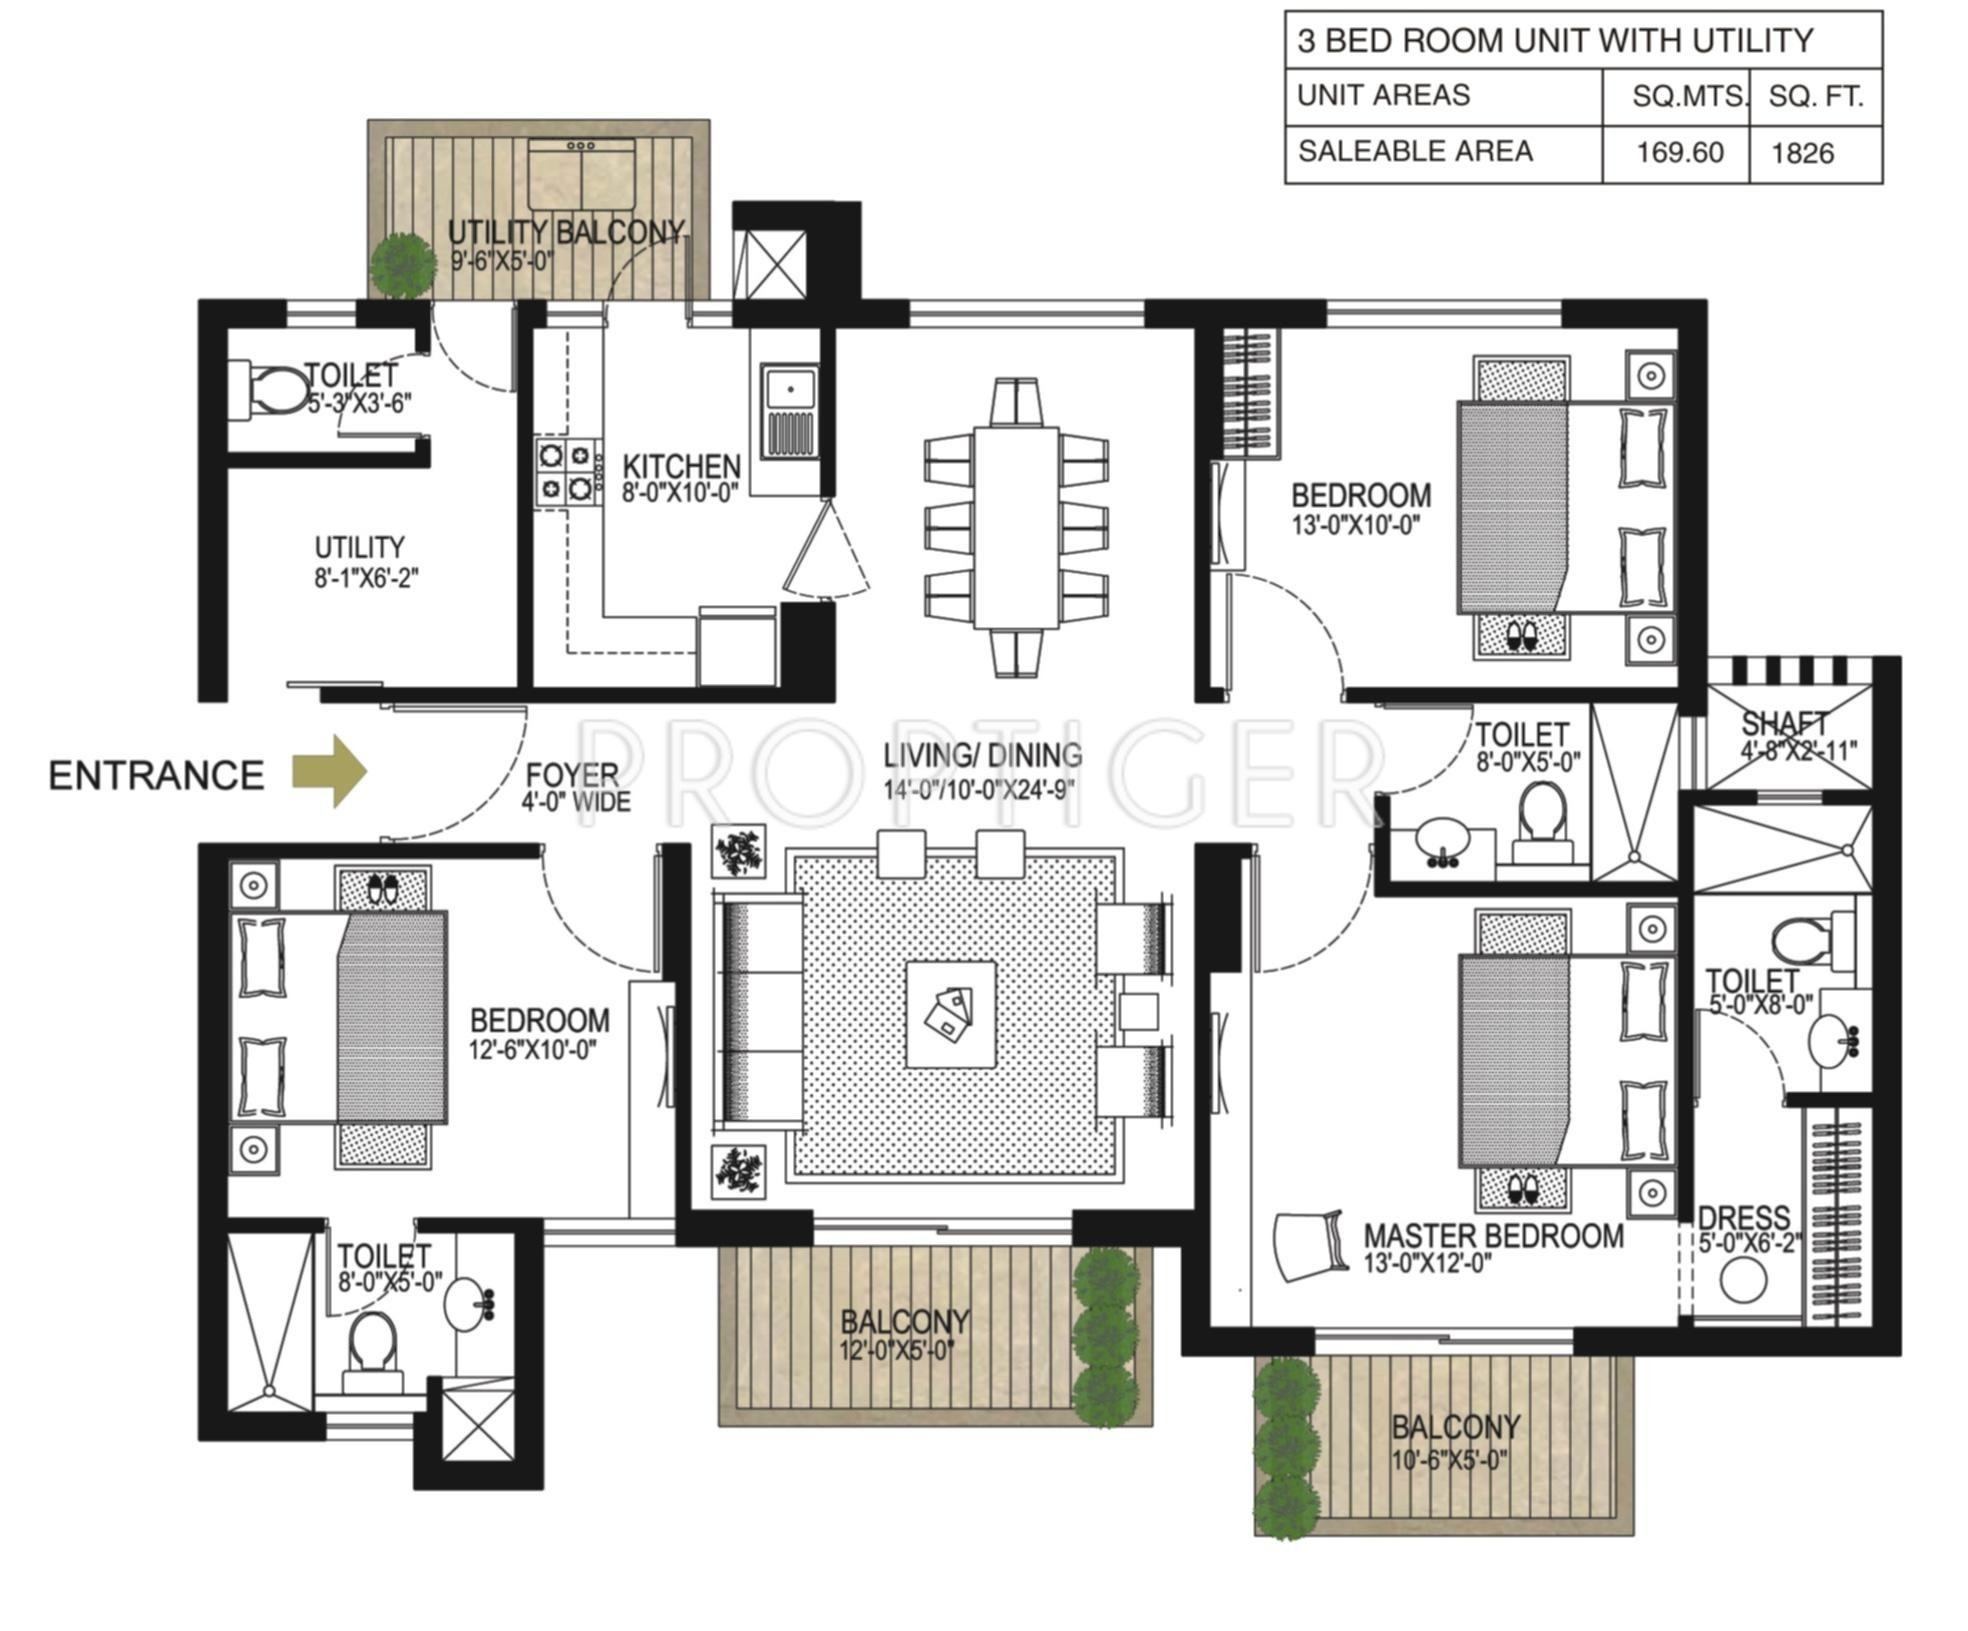 45 ft x 40 house plans arts 1826 sq ft 3 bhk 3t apartment in alpha g corp gurgaon one w1024 v 8 24 x 45 house plans